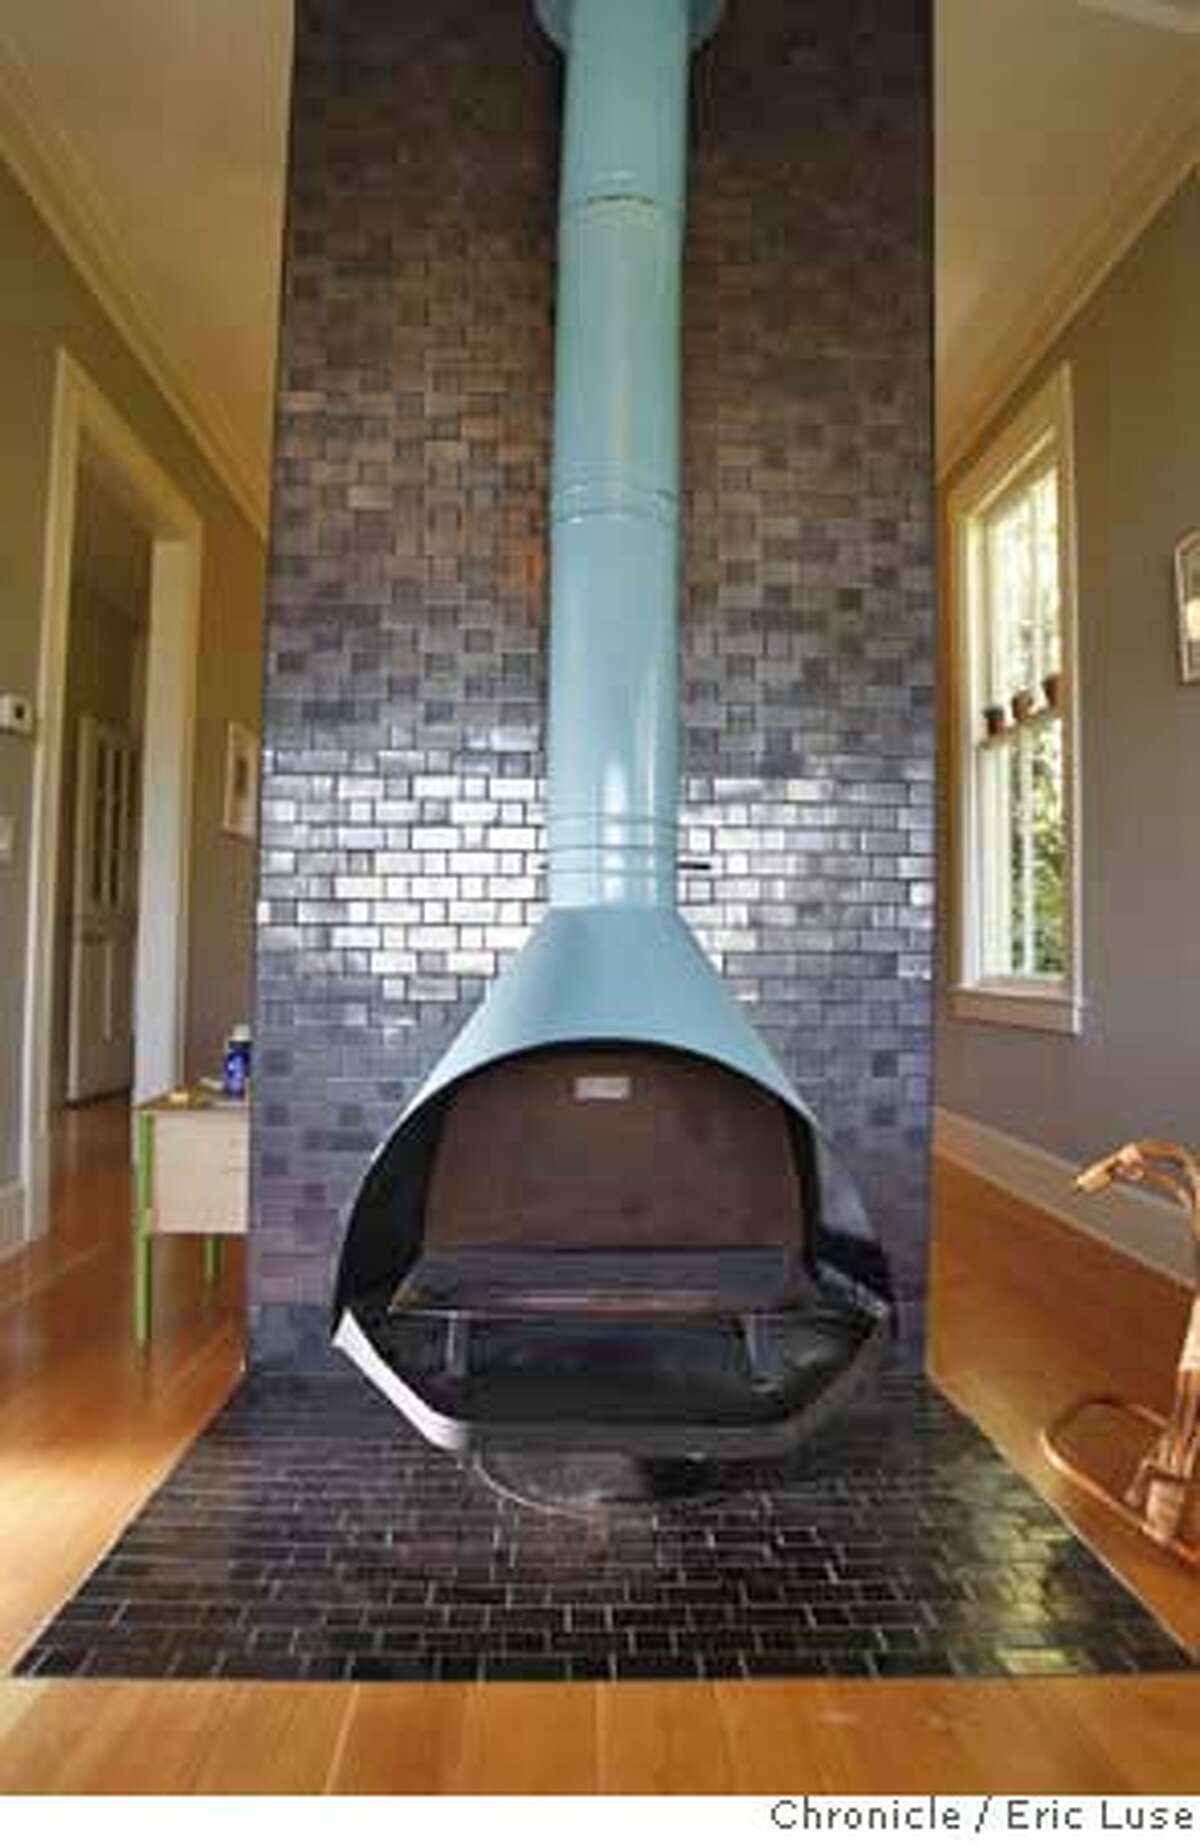 ###Live Caption:Fireplace in the home of Heath Ceramic owners Catherine Bailey and Robin Petravic's home in Sausalito photographed on Wednesday, April 16, 2008. Photo by Eric Luse / San Francisco Chronicle###Caption History:Fireplace in the home of Heath Ceramic owners Catherine Bailey and Robin Petravic's home in Sausalito photographed on Wednesday, April 16, 2008. Photo by Eric Luse / San Francisco Chronicle###Notes:Name cq by source###Special Instructions:MANDATORY CREDIT FOR PHOTOG AND SAN FRANCISCO CHRONICLE/NO SALES-MAGS OUT